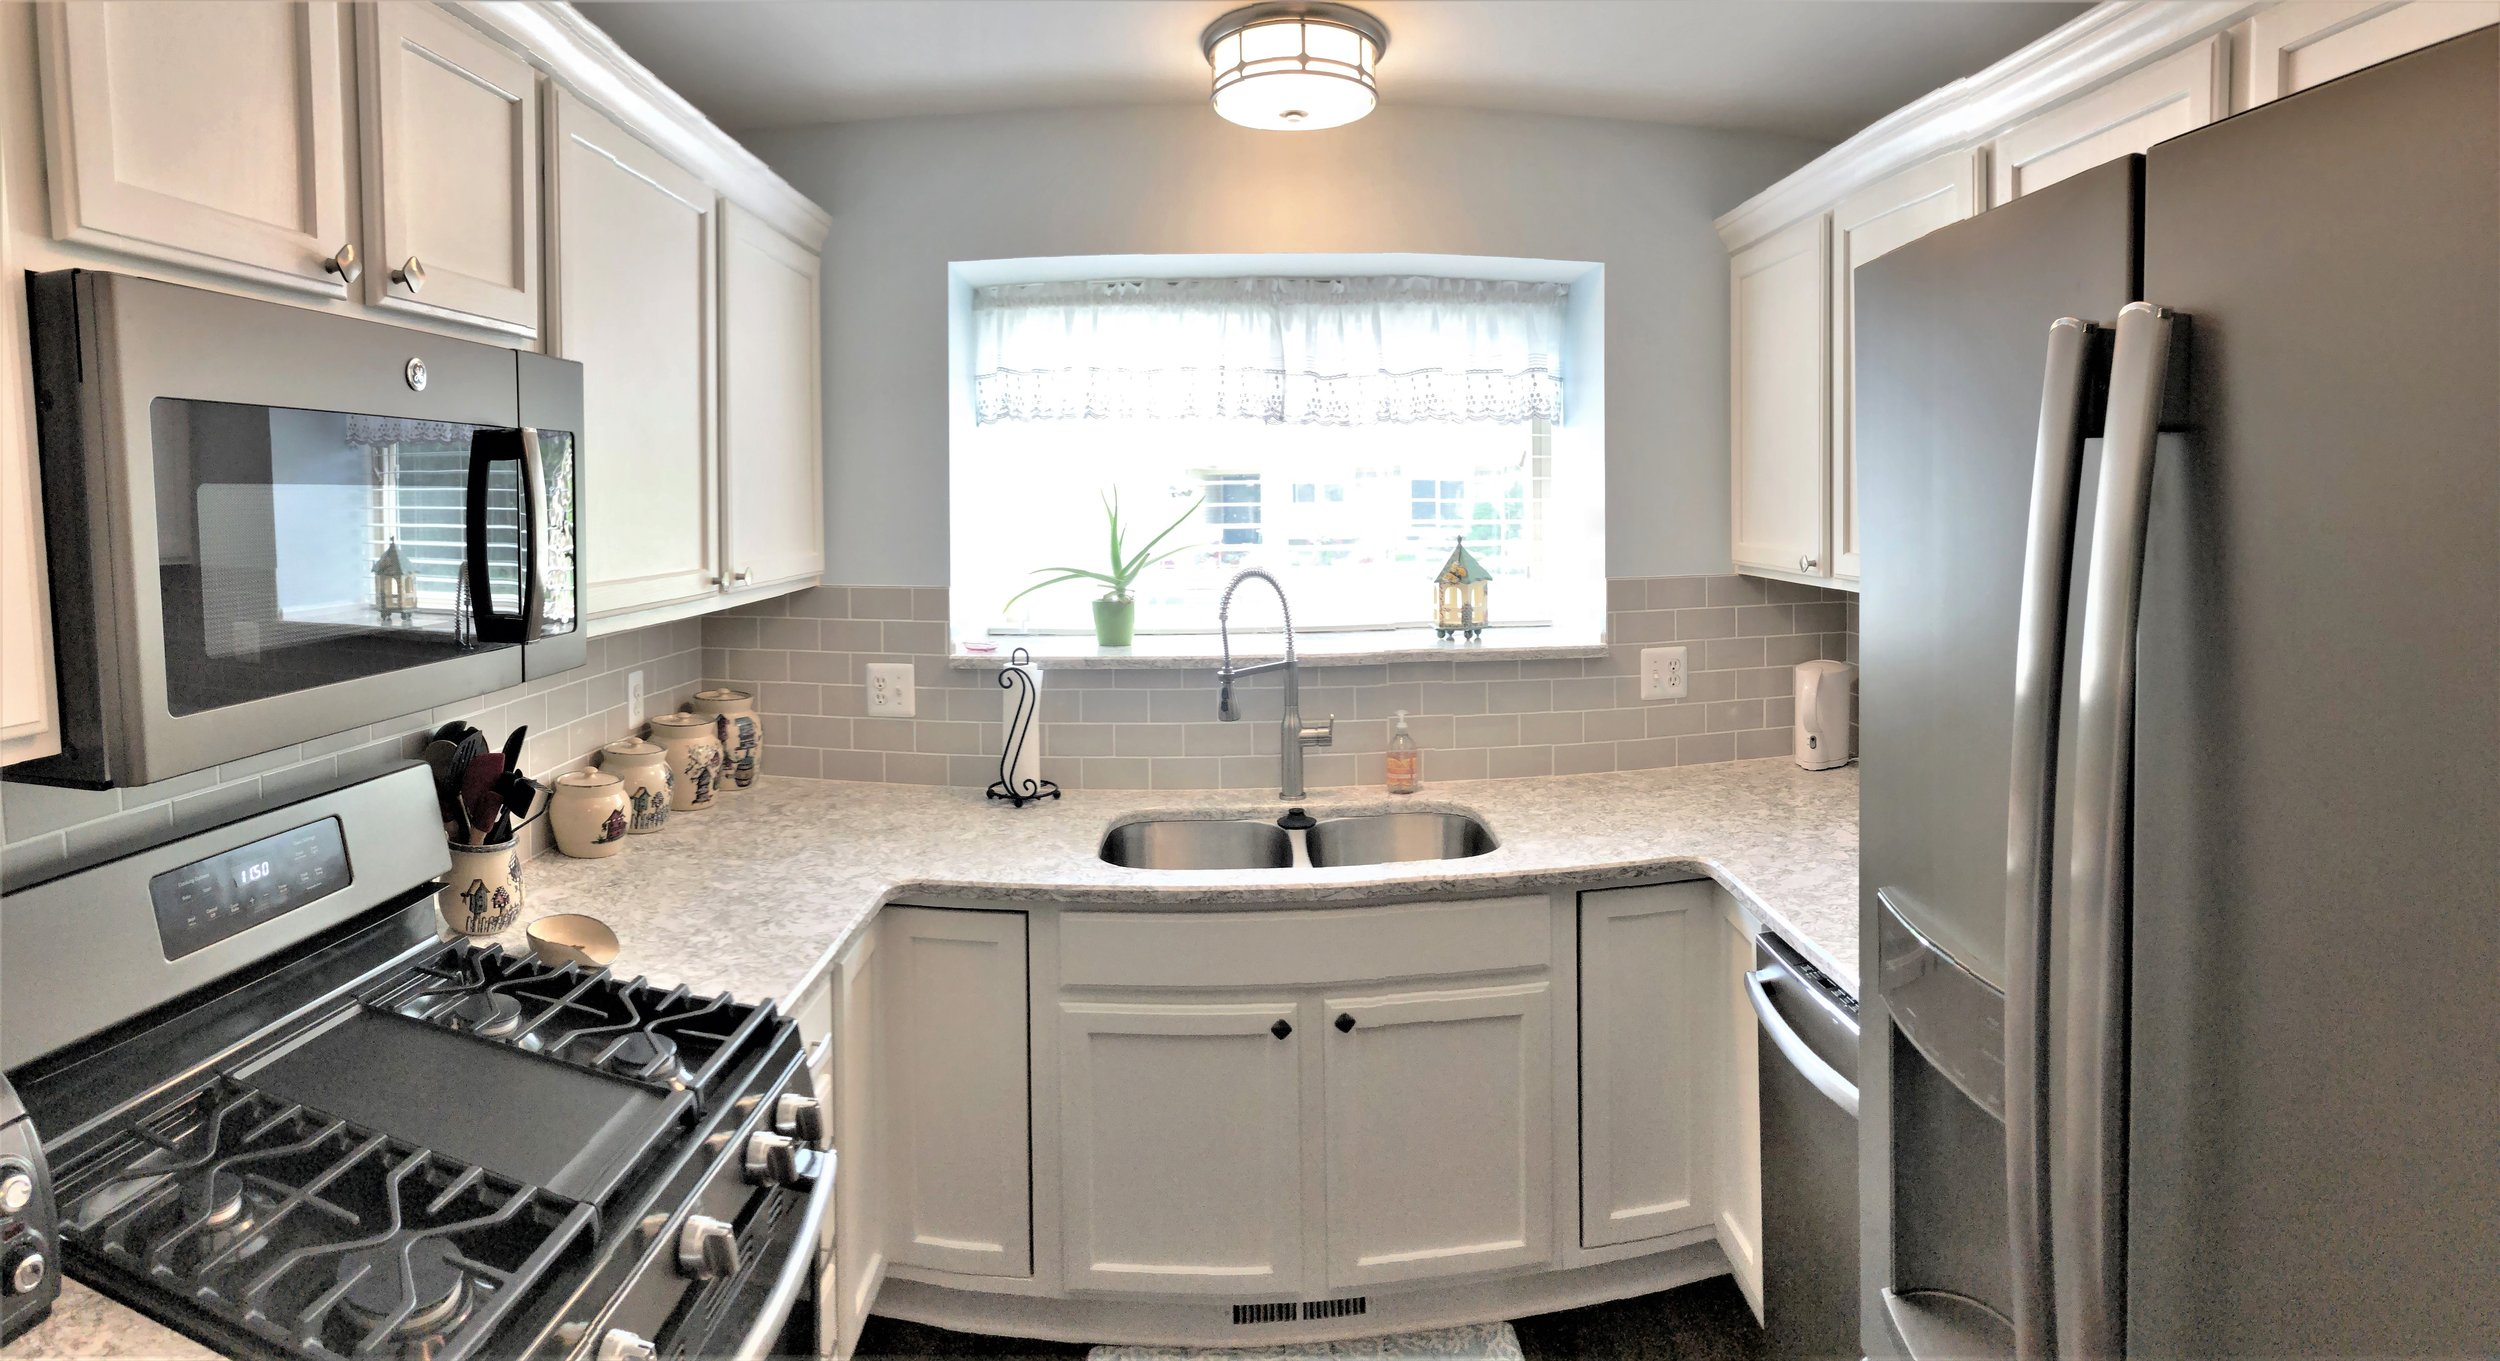 Interior Remodeling - Interior home remodeling services - Bathrooms, kitchens, basements, open concepts, home modification, & more.